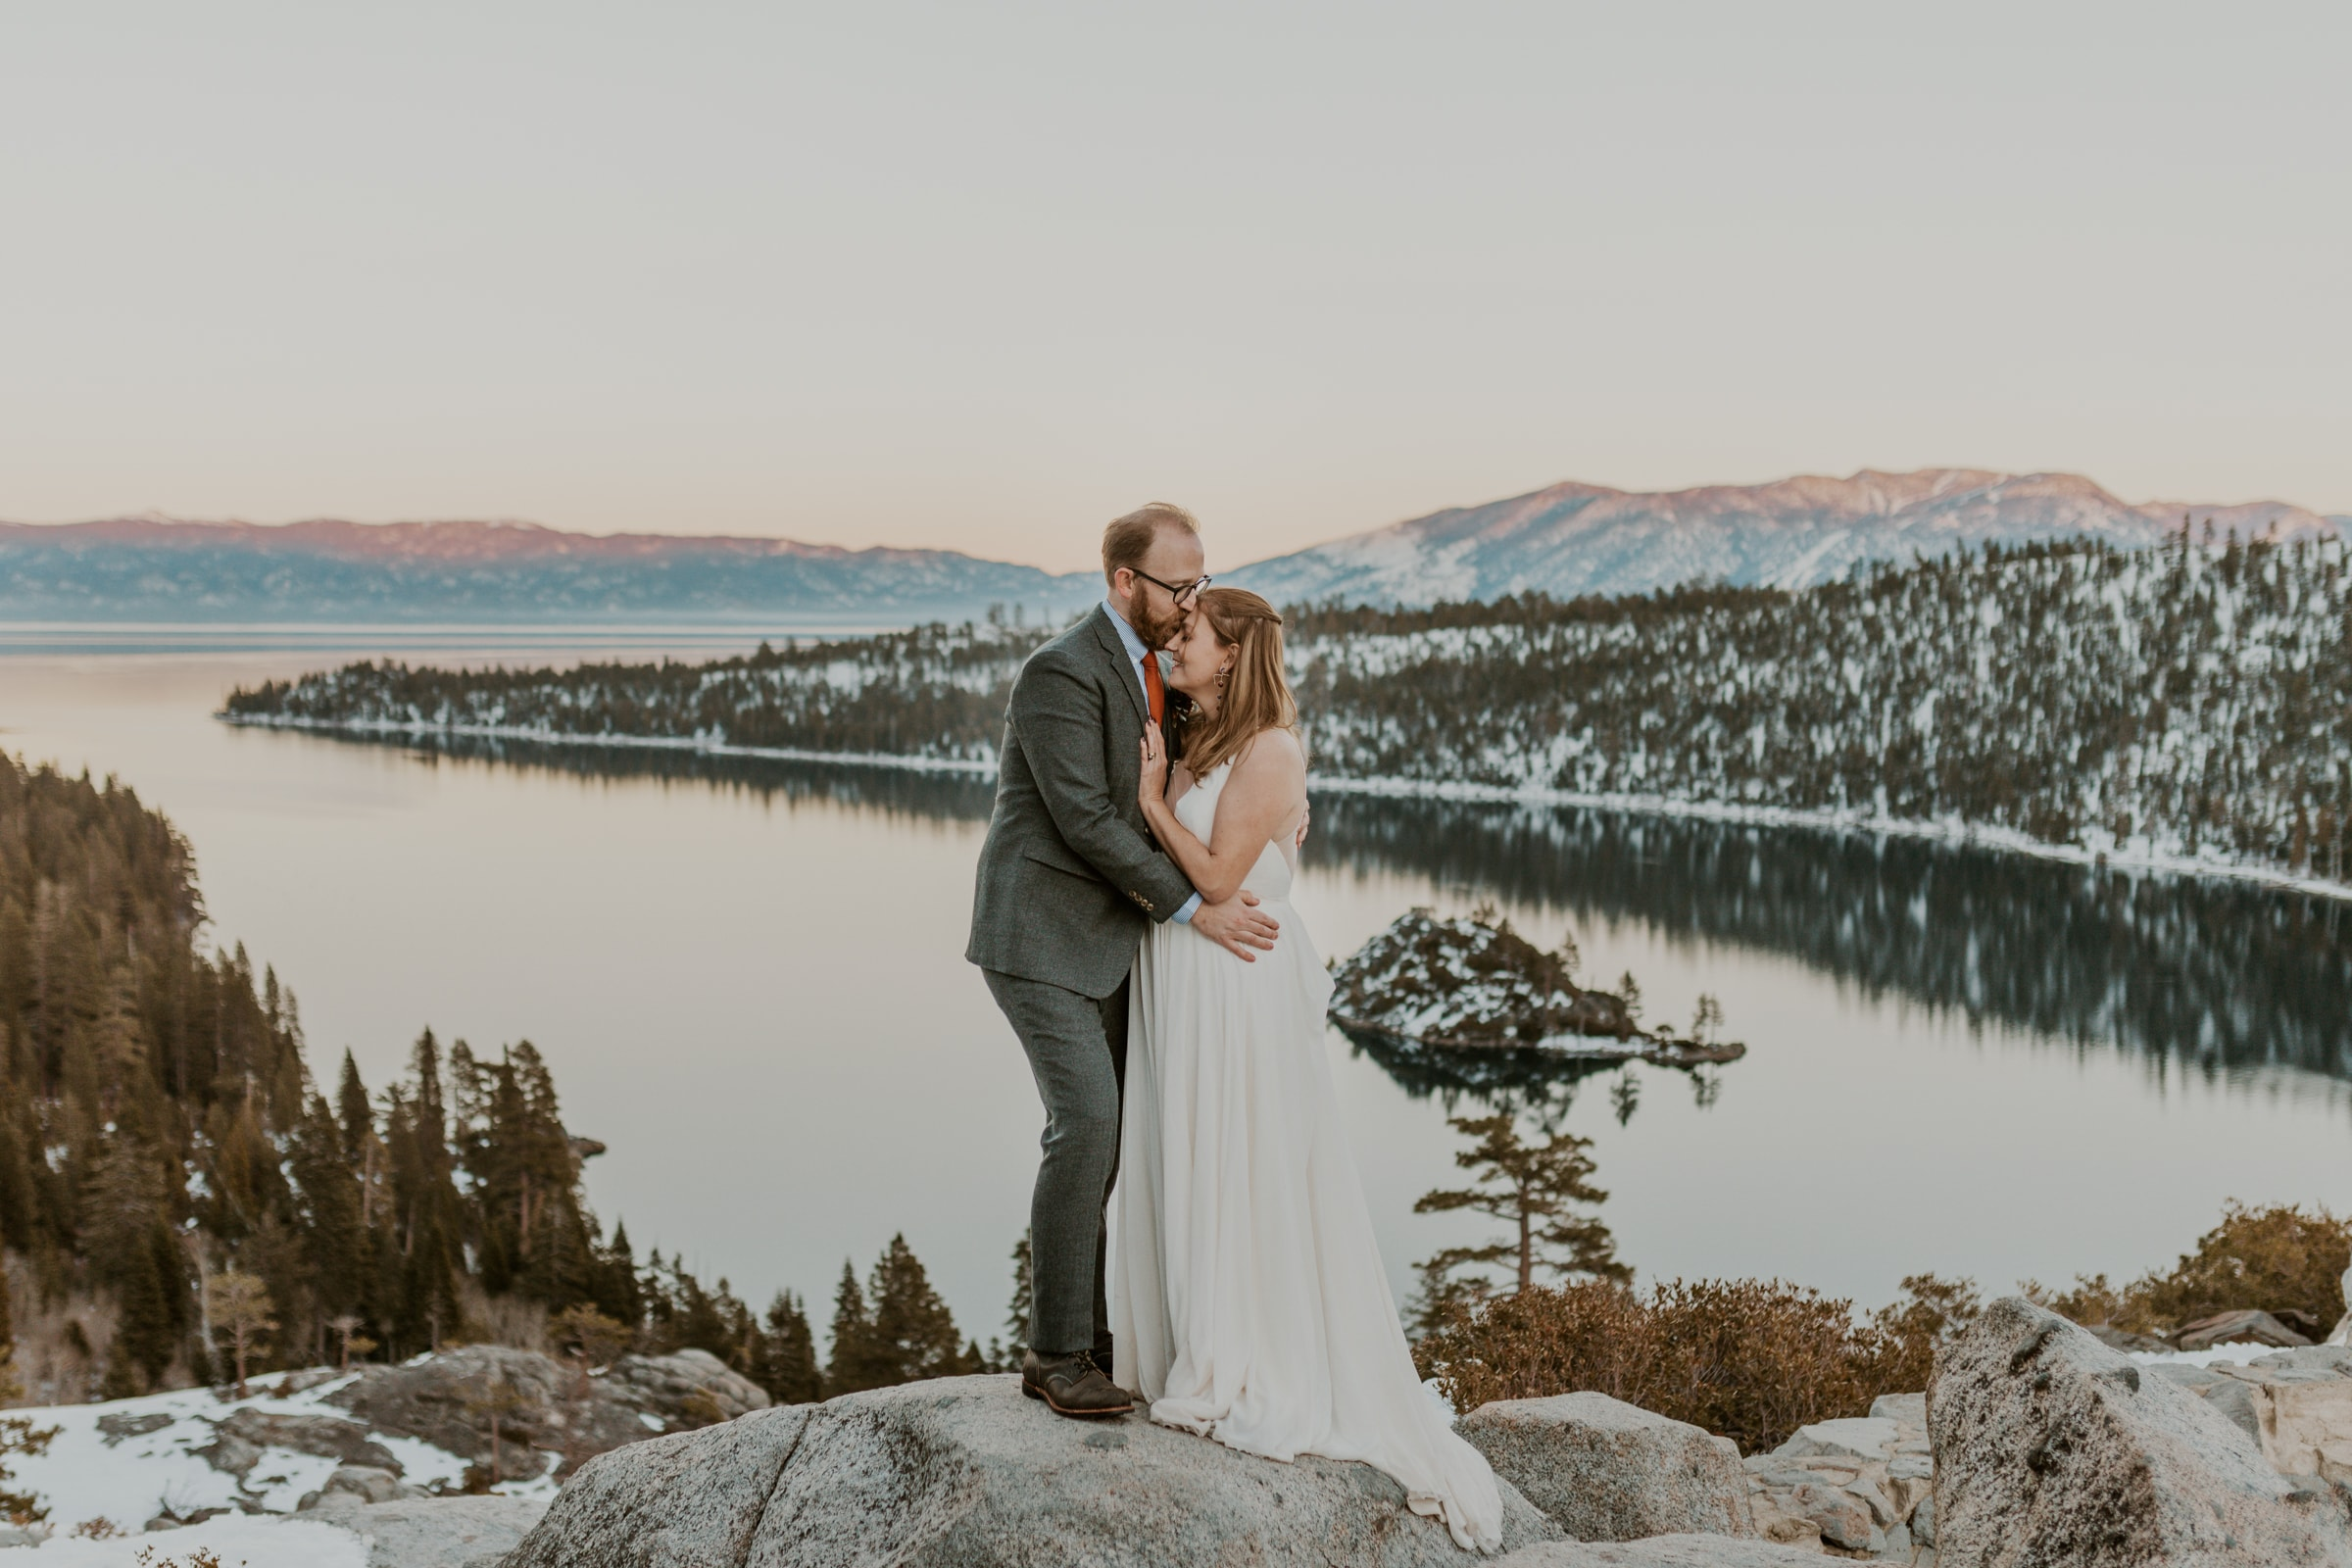 A couple eloping at Emerald Bay State Park in Lake Tahoe.